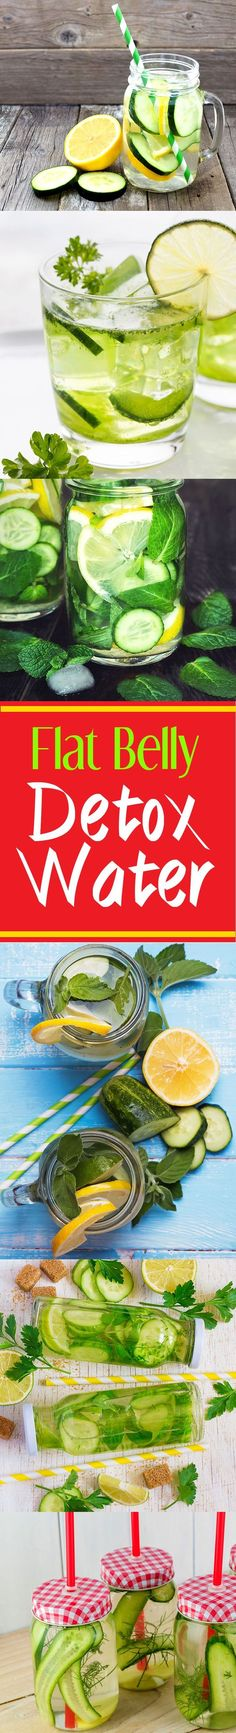 Flat Belly Detox Water. Slimming & Detox Fruit Infused Water Flat Belly Diet Drink. #loseweight #fit #fitness #weightloss Read more on weight loss at weight-loss-factory.com